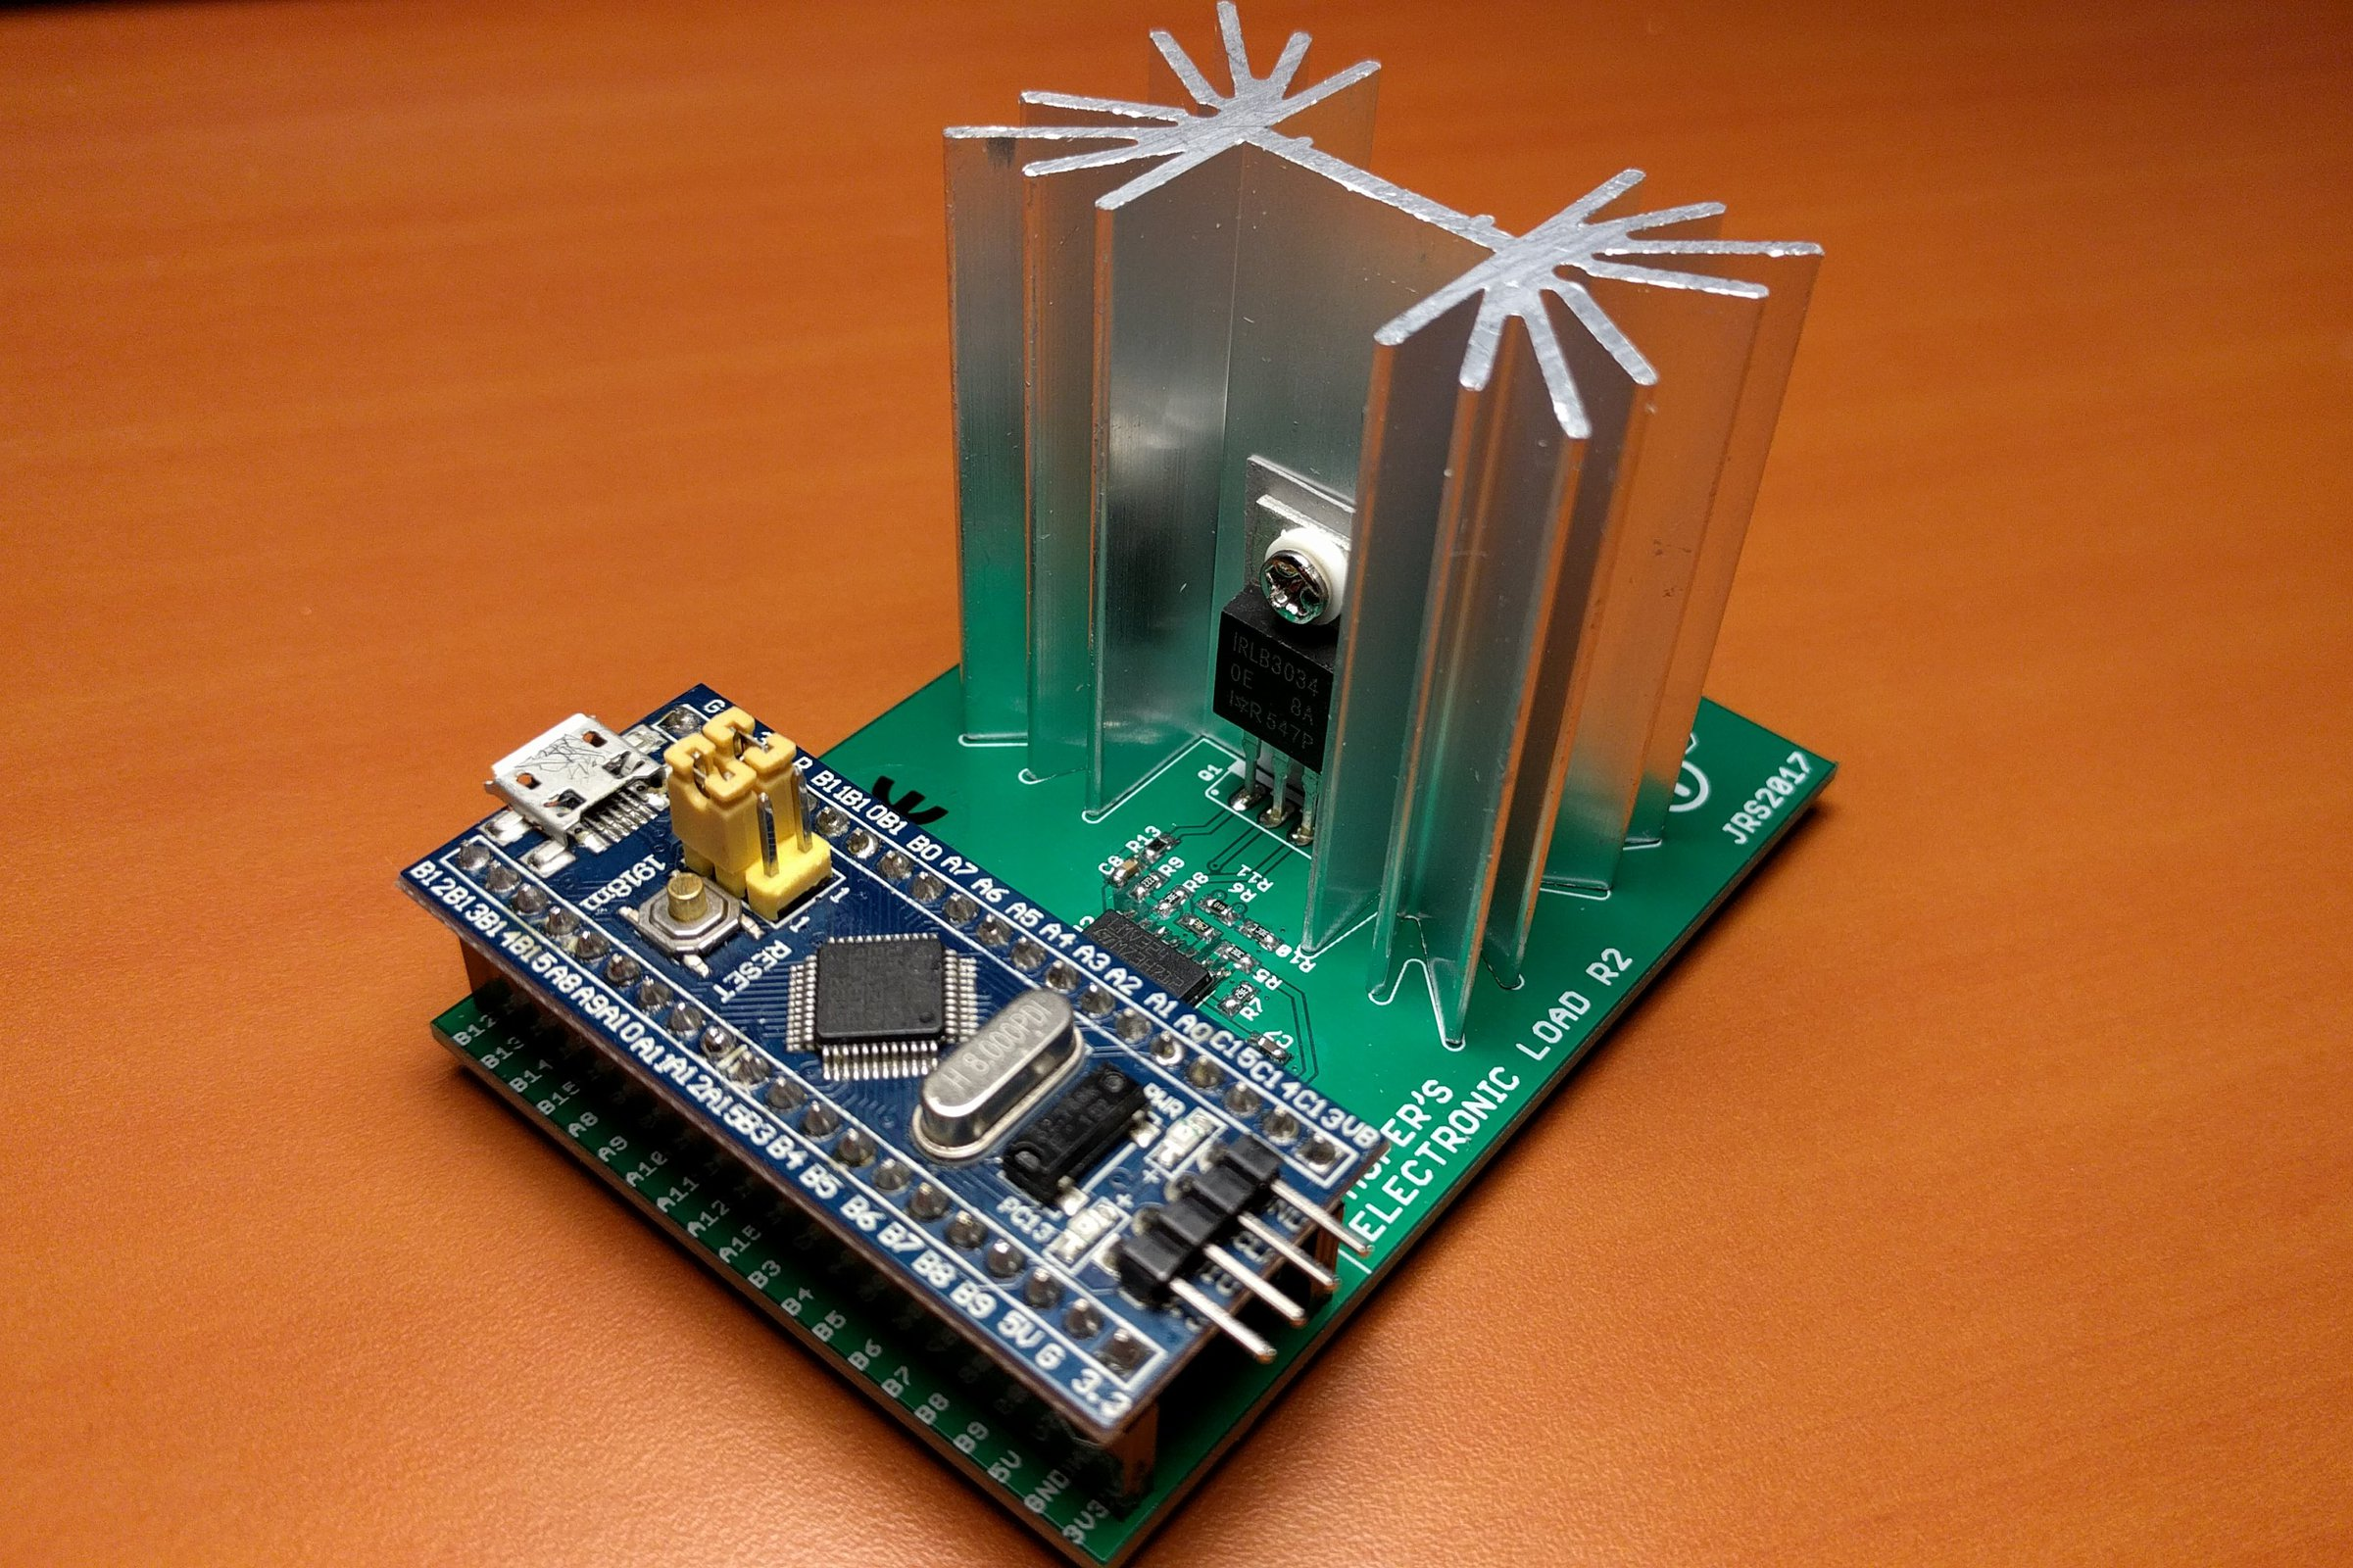 Arduino Electronic Load R2 From Jasper Sikken On Tindie Noninverting Amplifier Analog Integrated Circuits Electronics 2